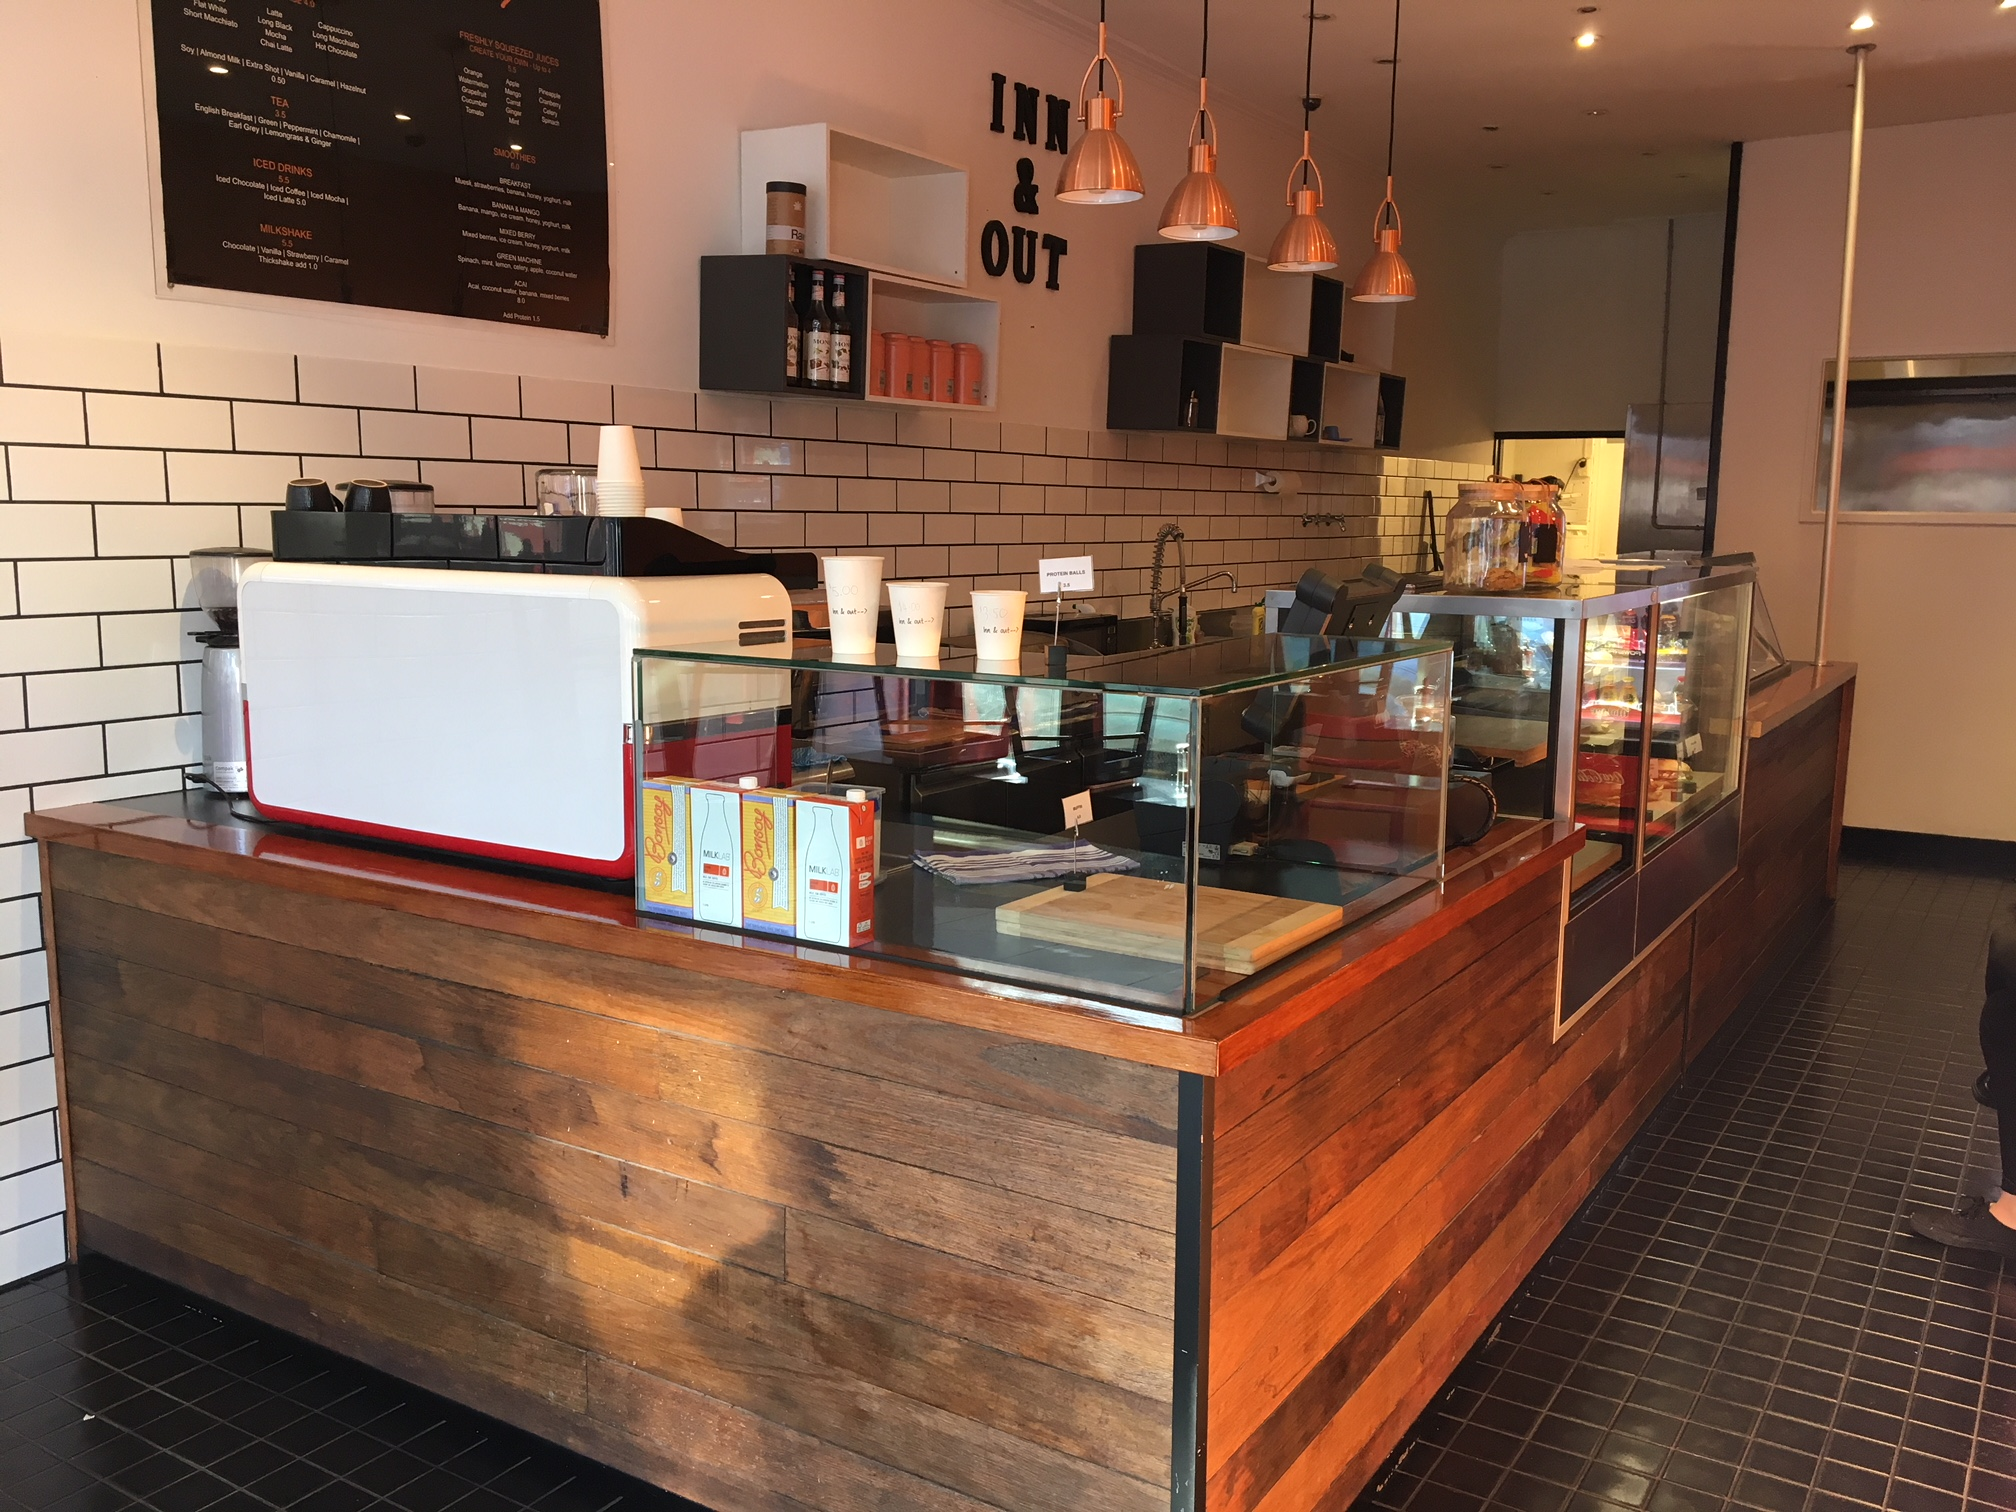 Quaint Cafe on Chapel Street – Must Be Sold